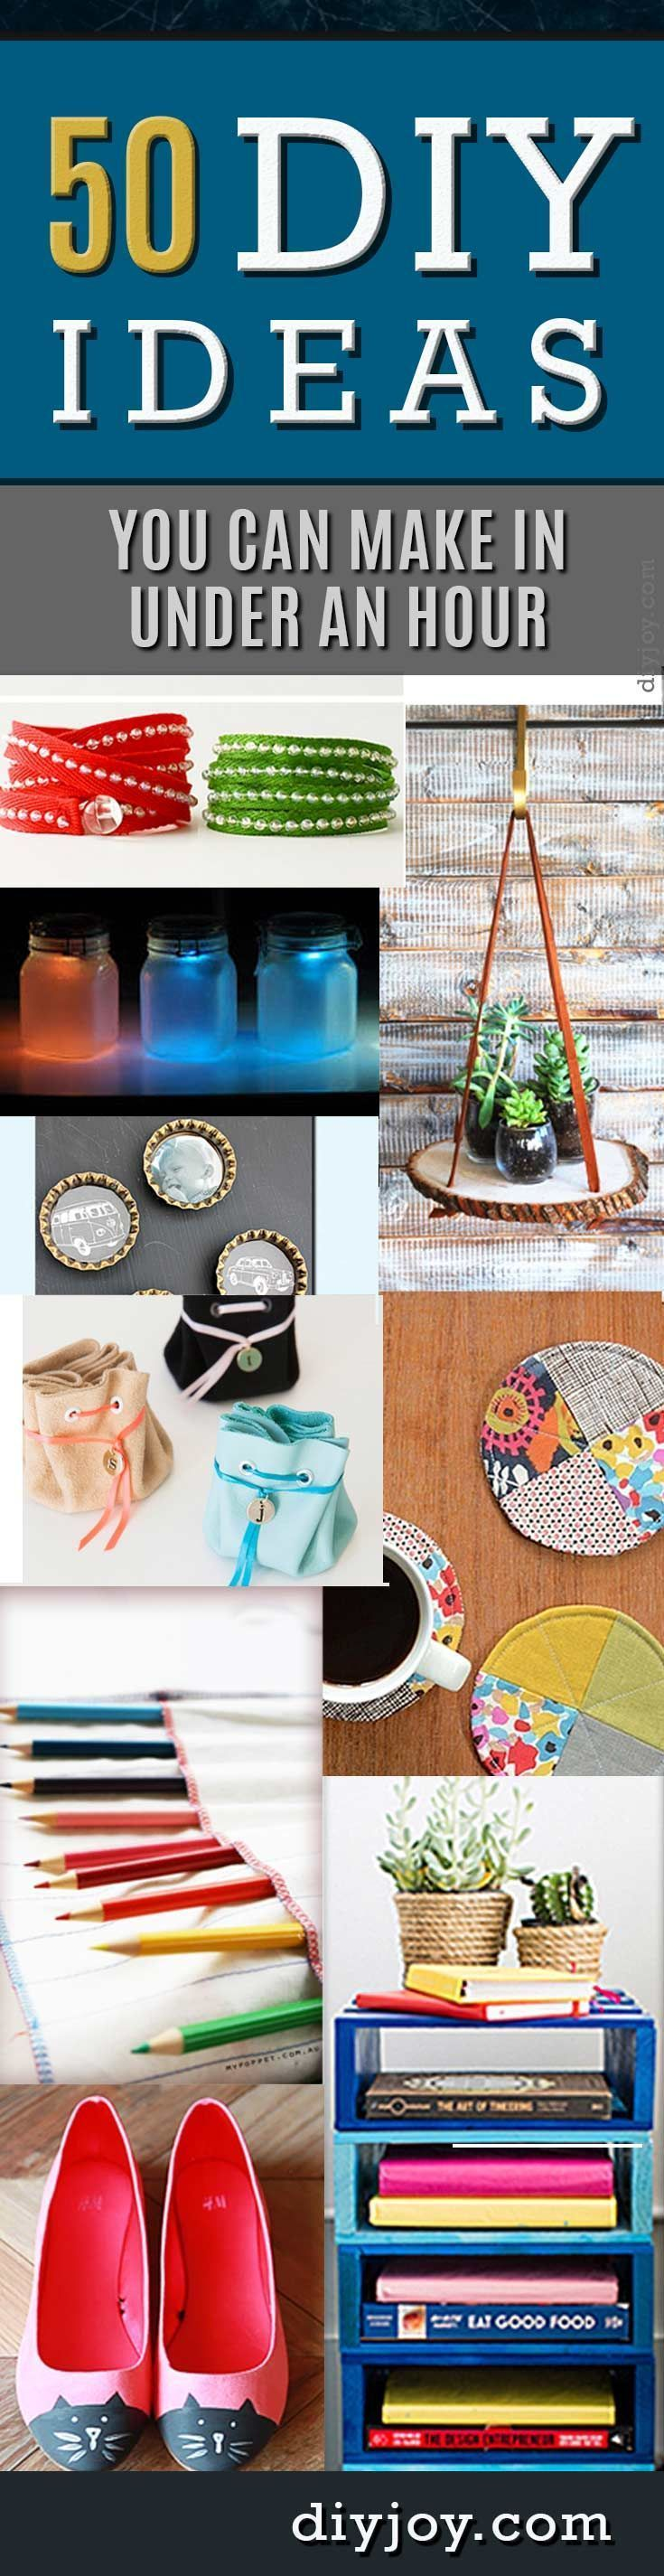 tiffany gifts for her Fast DIY Projects and Easy Crafts Ideas You Can Make in Under an Hour